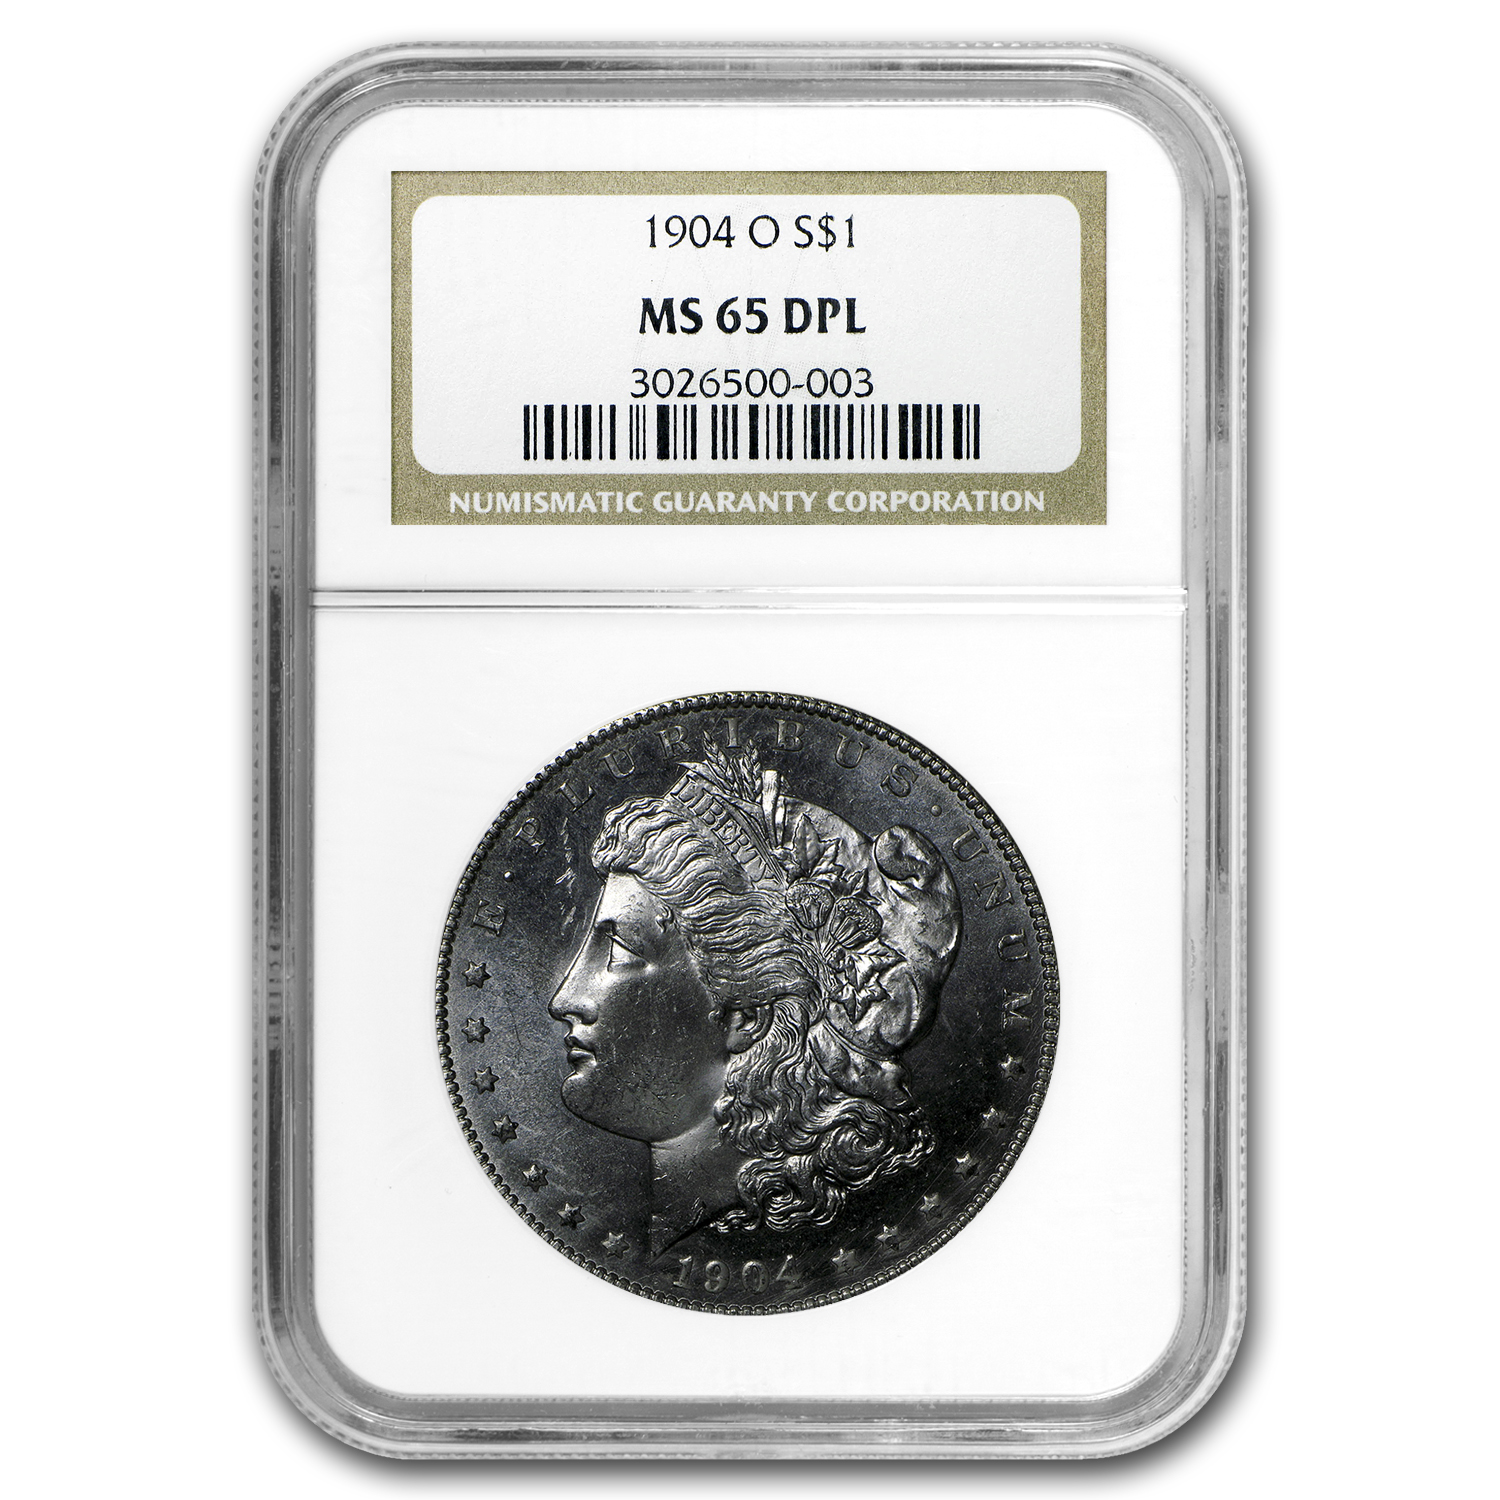 1904-O Morgan Dollar - MS-65 DPL Deep Mirror Proof Like NGC